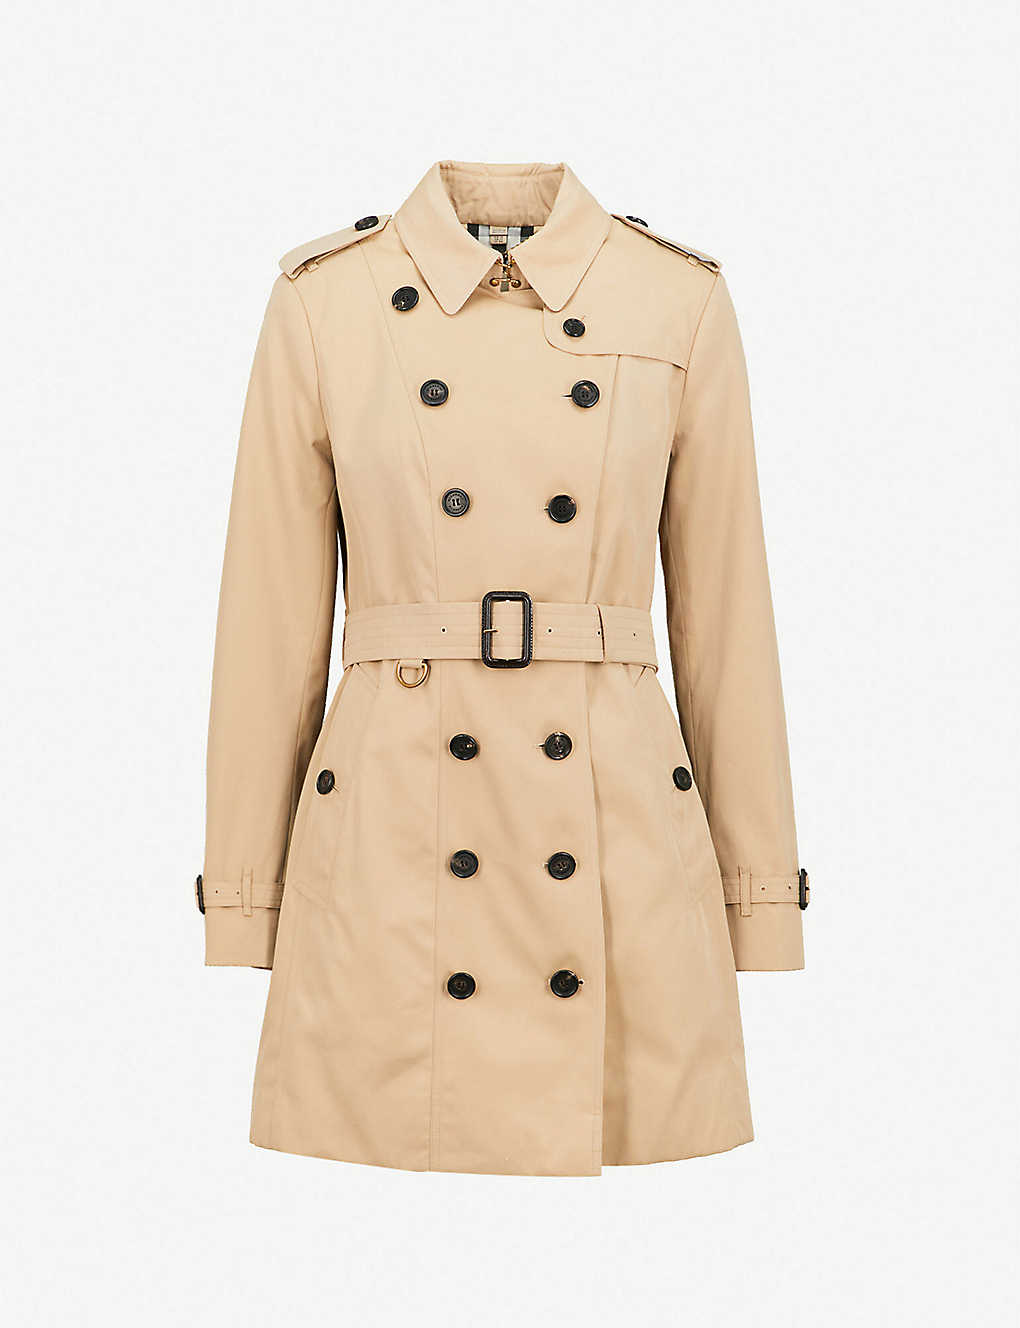 BURBERRY - Sandringham cotton trench coat   Selfridges.com b13da07214b